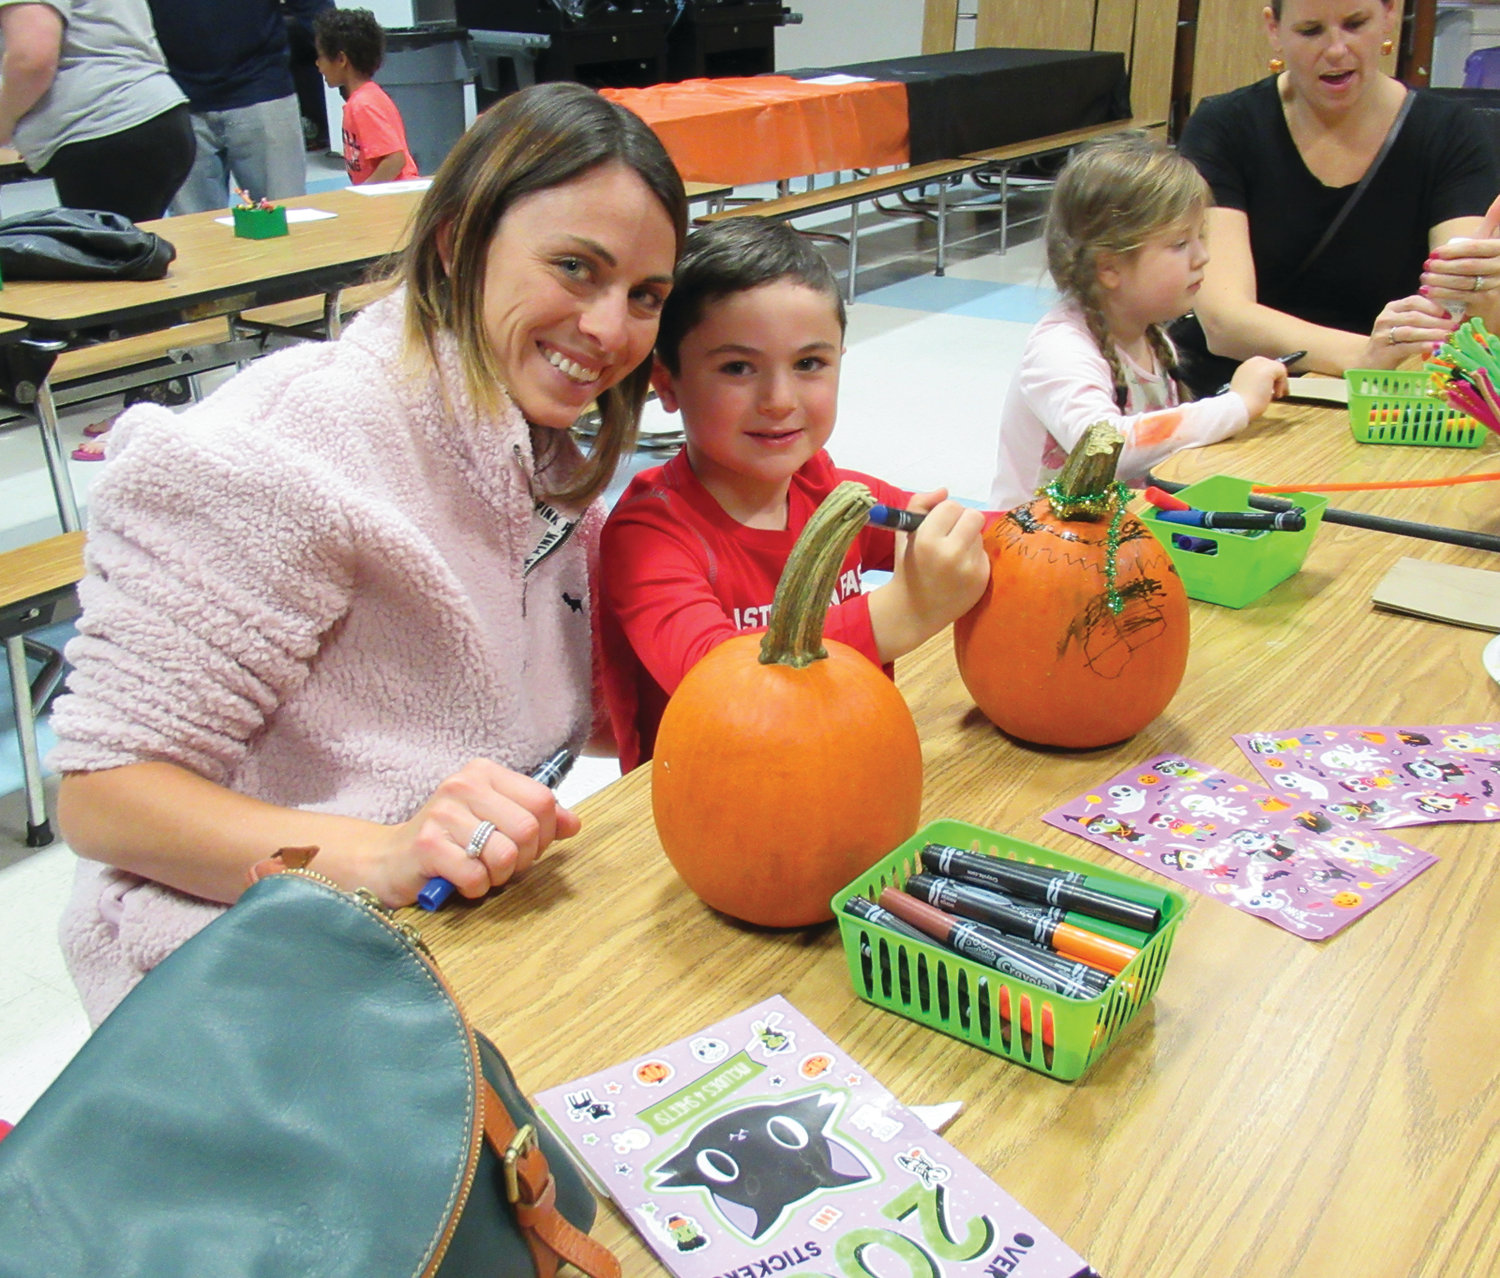 CAM'S CORNER: ECC student Cameron D'Elia, 4, and his mother, Jennifer D'Elia, display their joy while painting a pumpkin inside Ferri Middle School's cafeteria last Wednesday night.